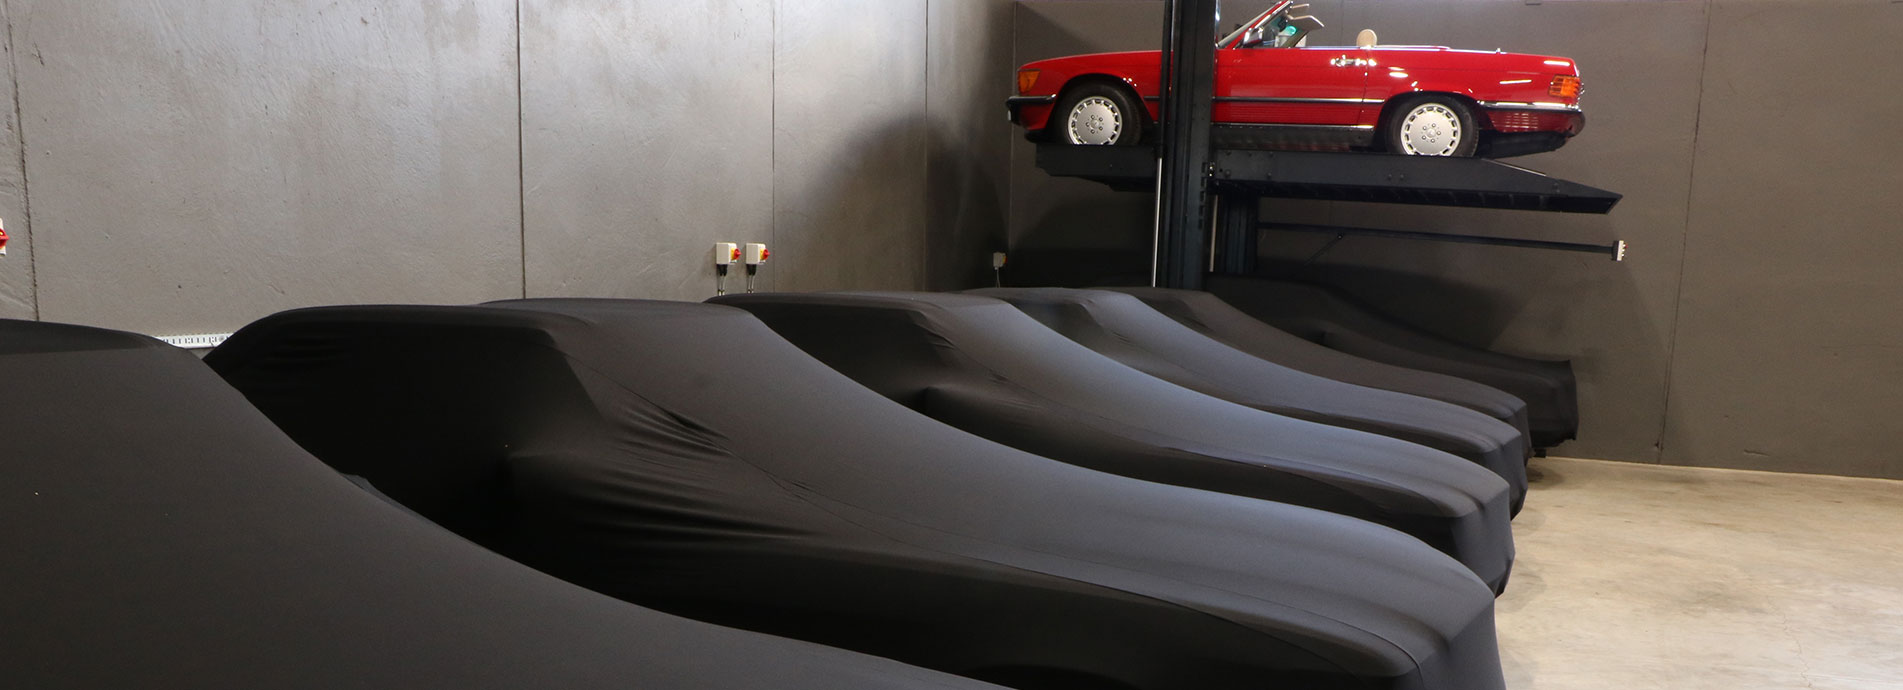 Fleet of classic Mercedes-Benz cars covered in The SL Shop storage unit